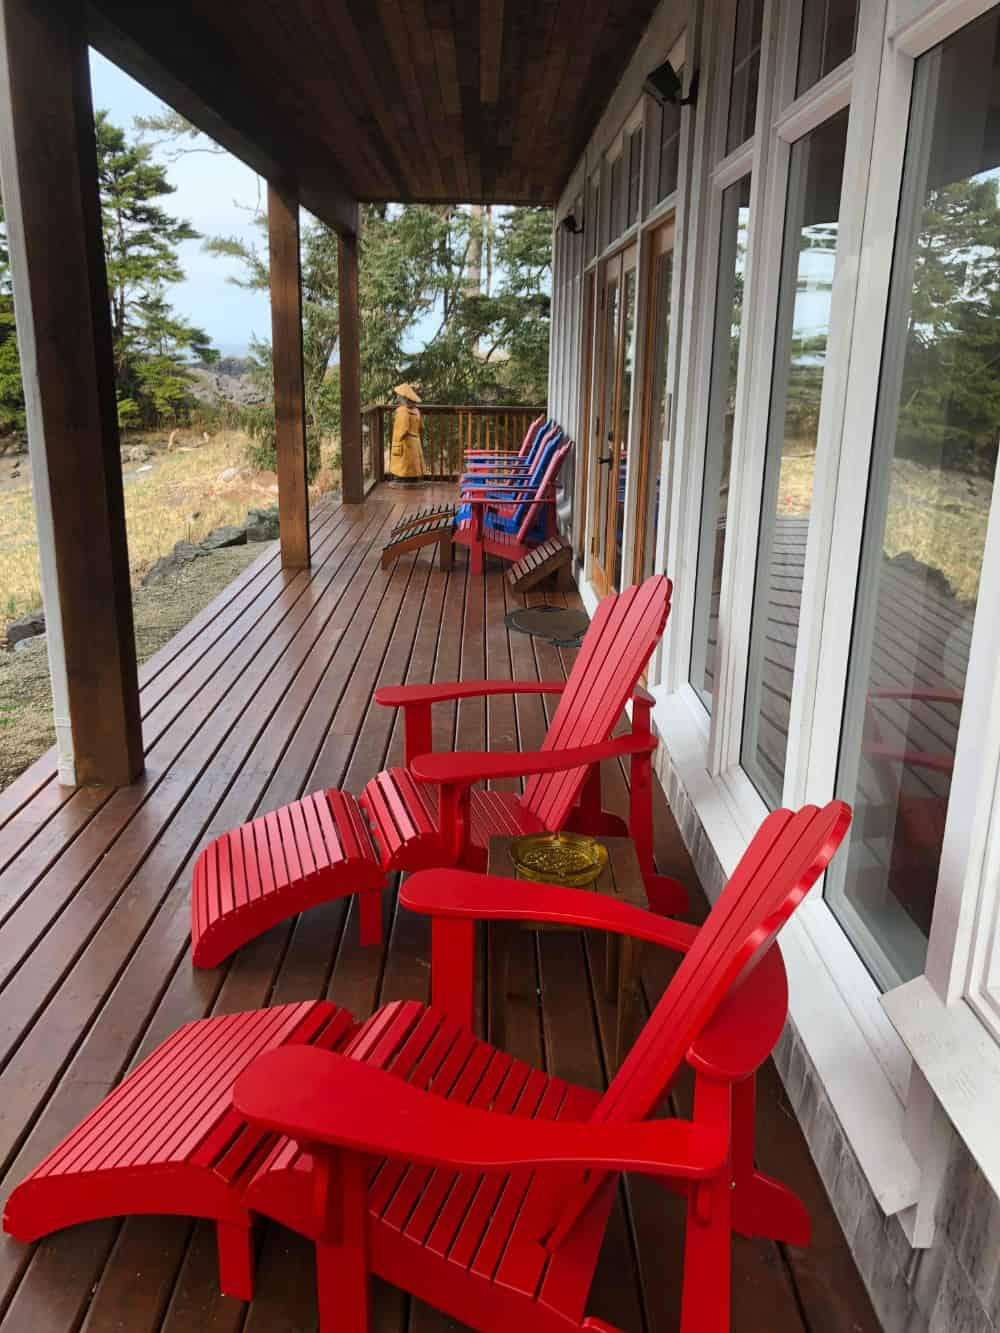 The veranda-style deck runs along the entire width of the home and is furnished with several comfortable chairs.